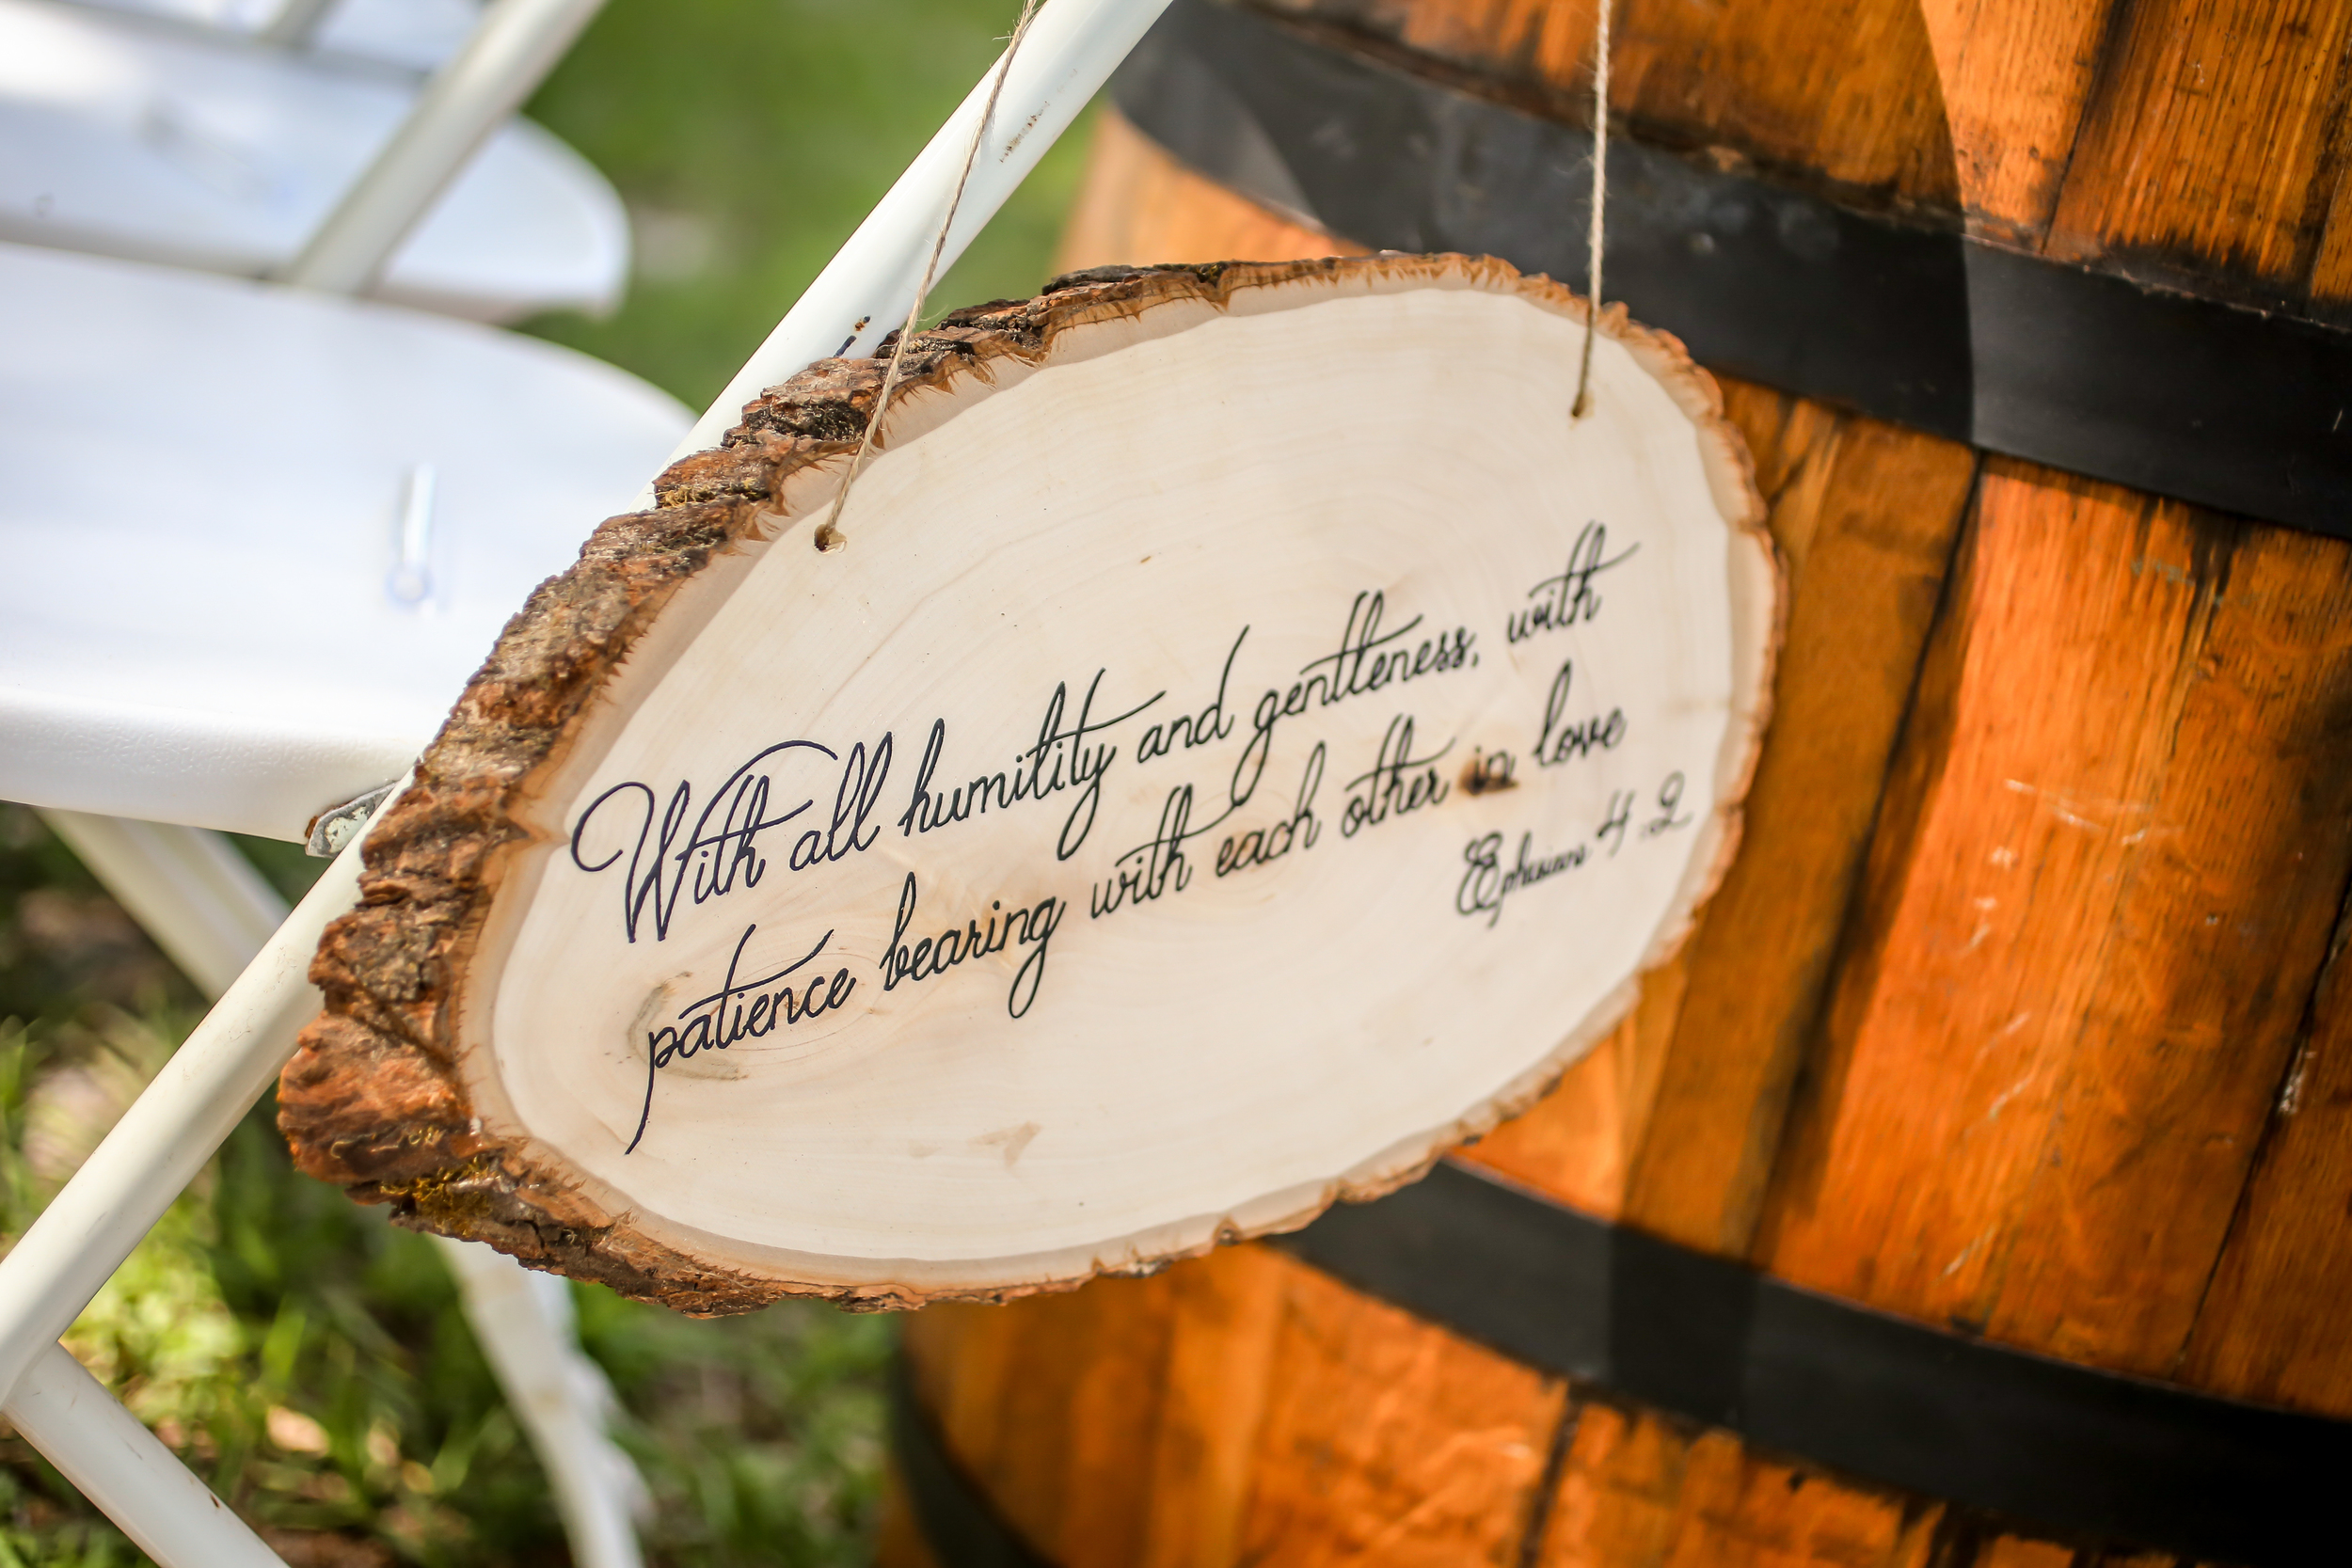 The aisle was lined with cut wood slabs with handwritten Bible verses